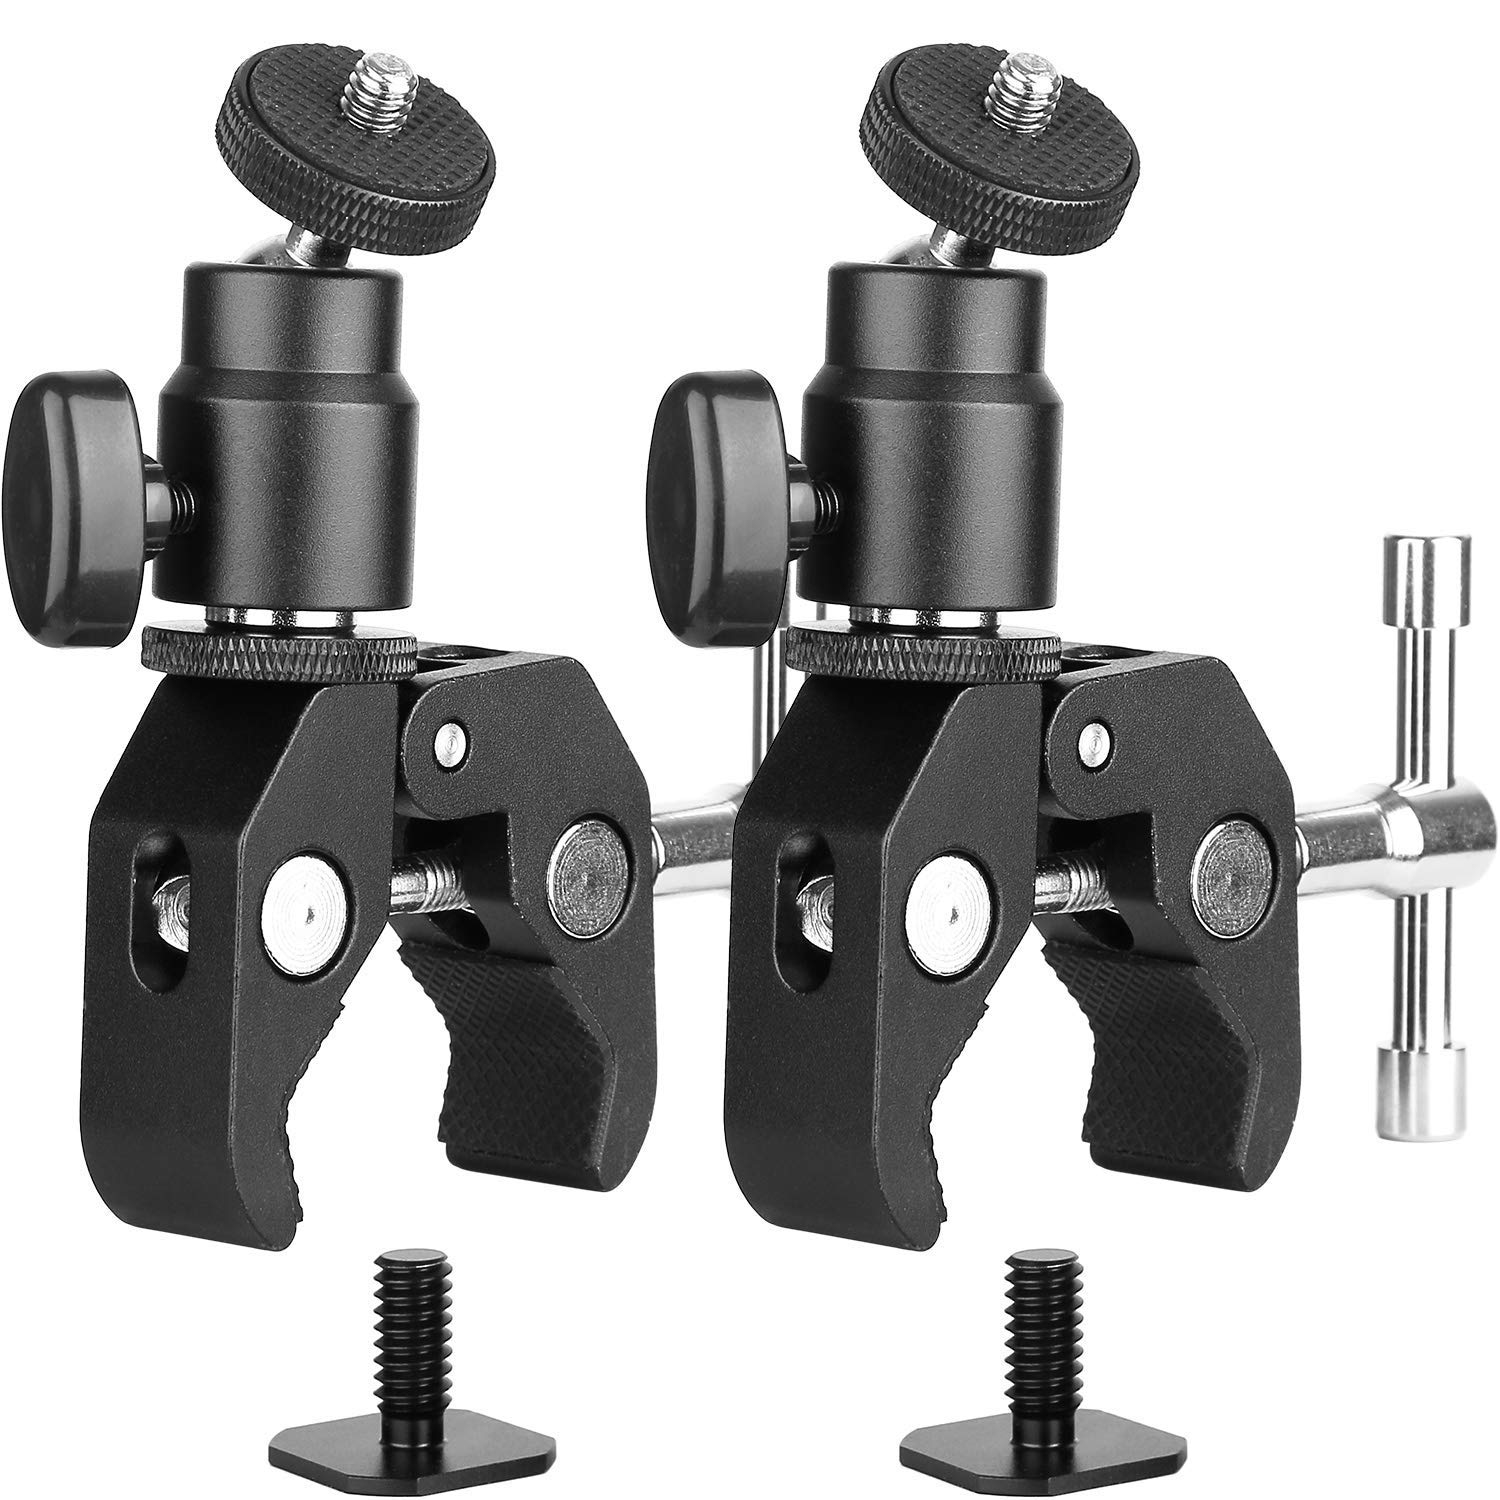 "2Pack ChromLives Camera Clamp Mount Ball Head Monitor Clamp - Super Clamp and Mini Ball Head Hot Shoe Mount with 1/4""-20 Tripod Screw for LCD/DV Monitor, LED Lights, Flash Light,Microphone and More"